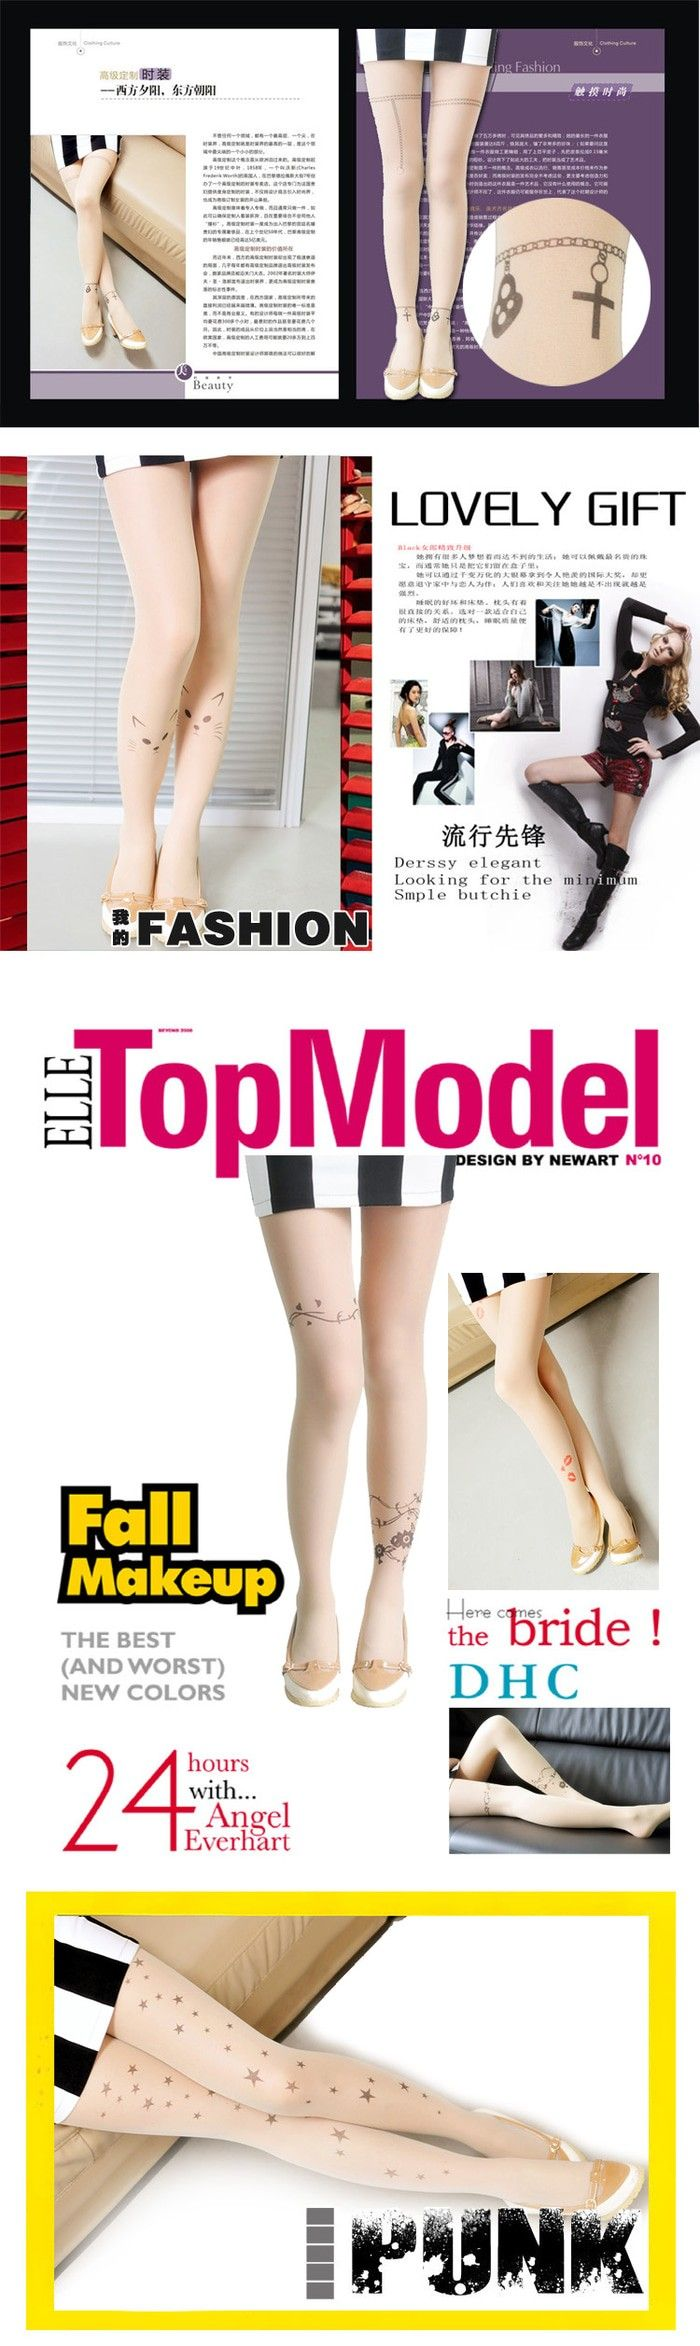 Accesories Stocking Tattoo Legging Tato Warna Kulit Serba Grosir Murah Barang Unik China Online Shop Onlineshop Surabaya Alat Rumah Tangga Fashion Importir Jakarta Bandung Malang Semarang Jogja Rak Baju Sepatu